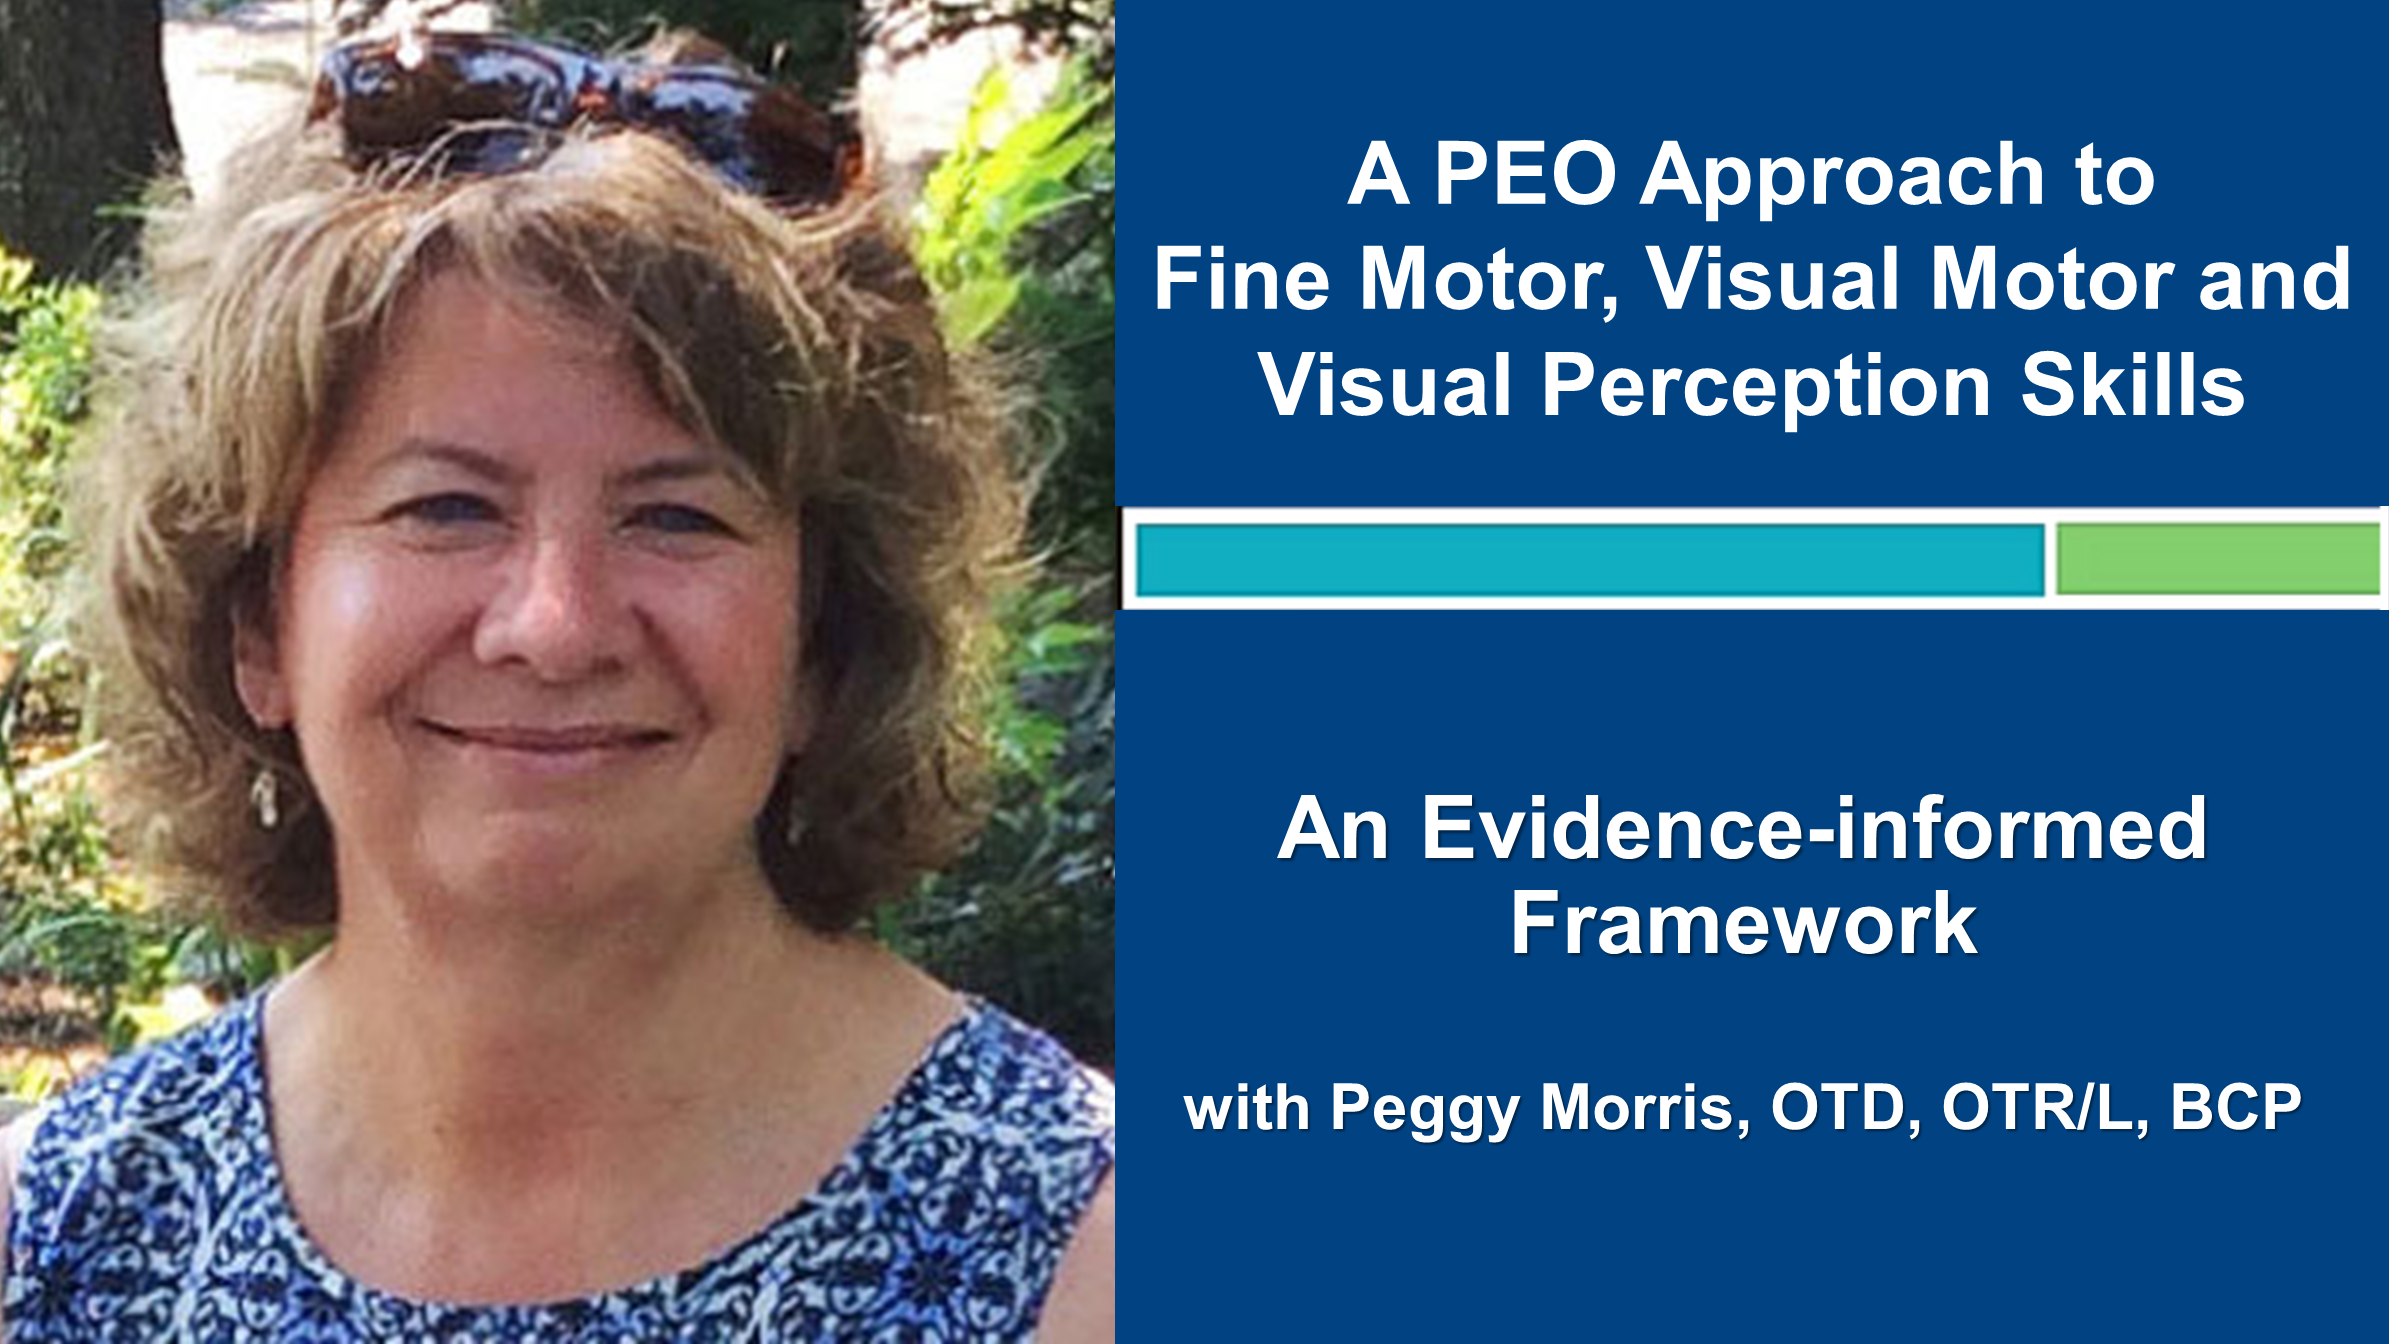 Webinar 1: A PEO Approach to Fine Motor, Visual Motor and Visual Perception Skills with Peggy Morris, OTD, OTR/L, BCP